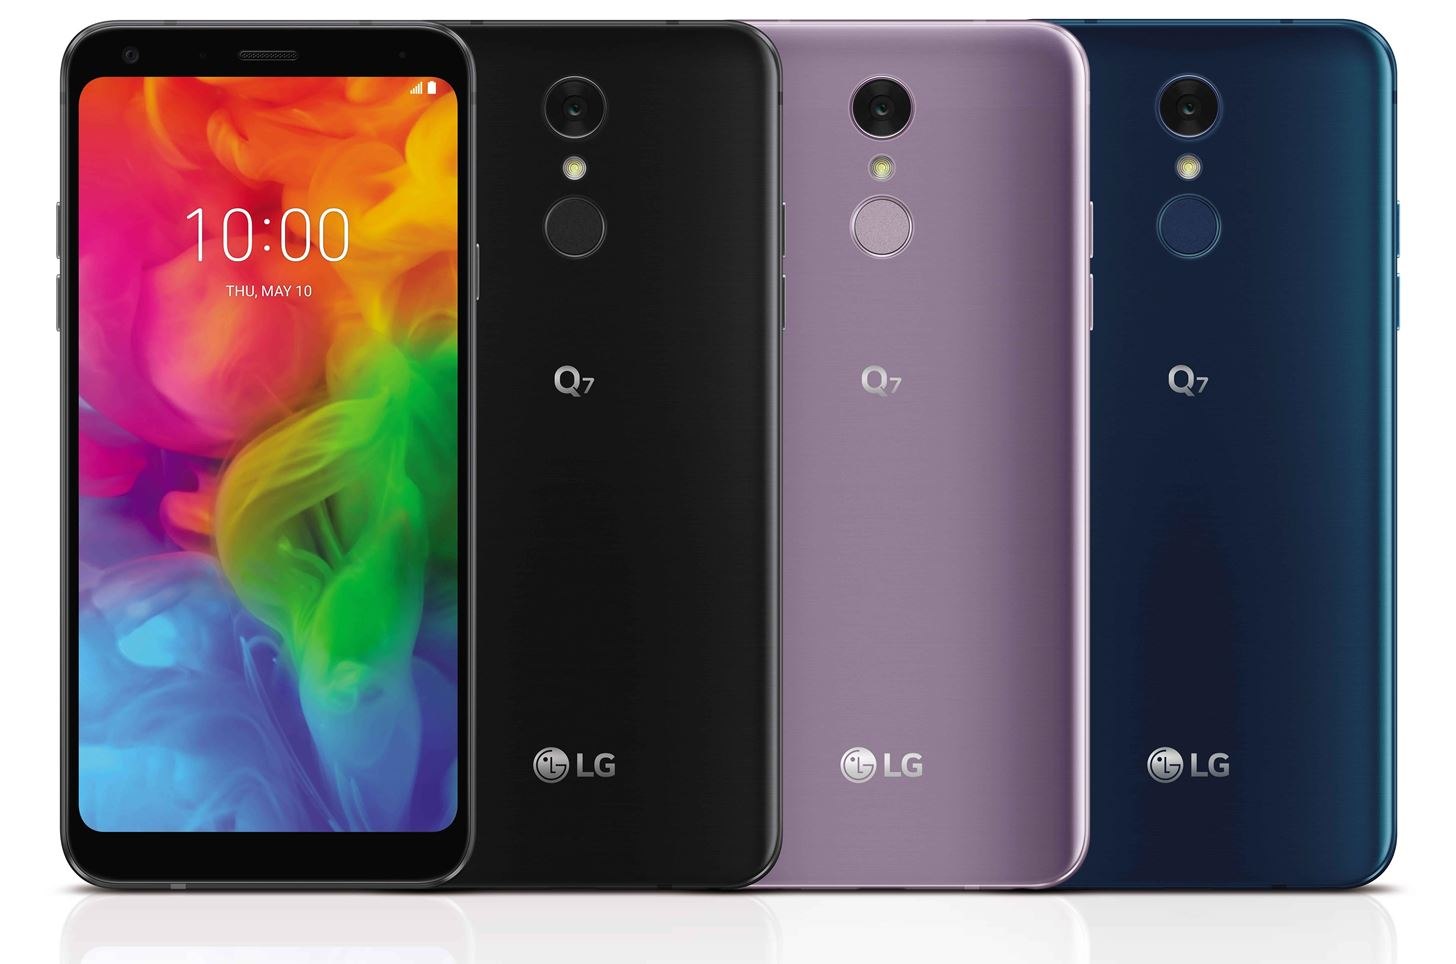 Introducing the LG Q7 — Flagship Display & Audio at a Budget Price